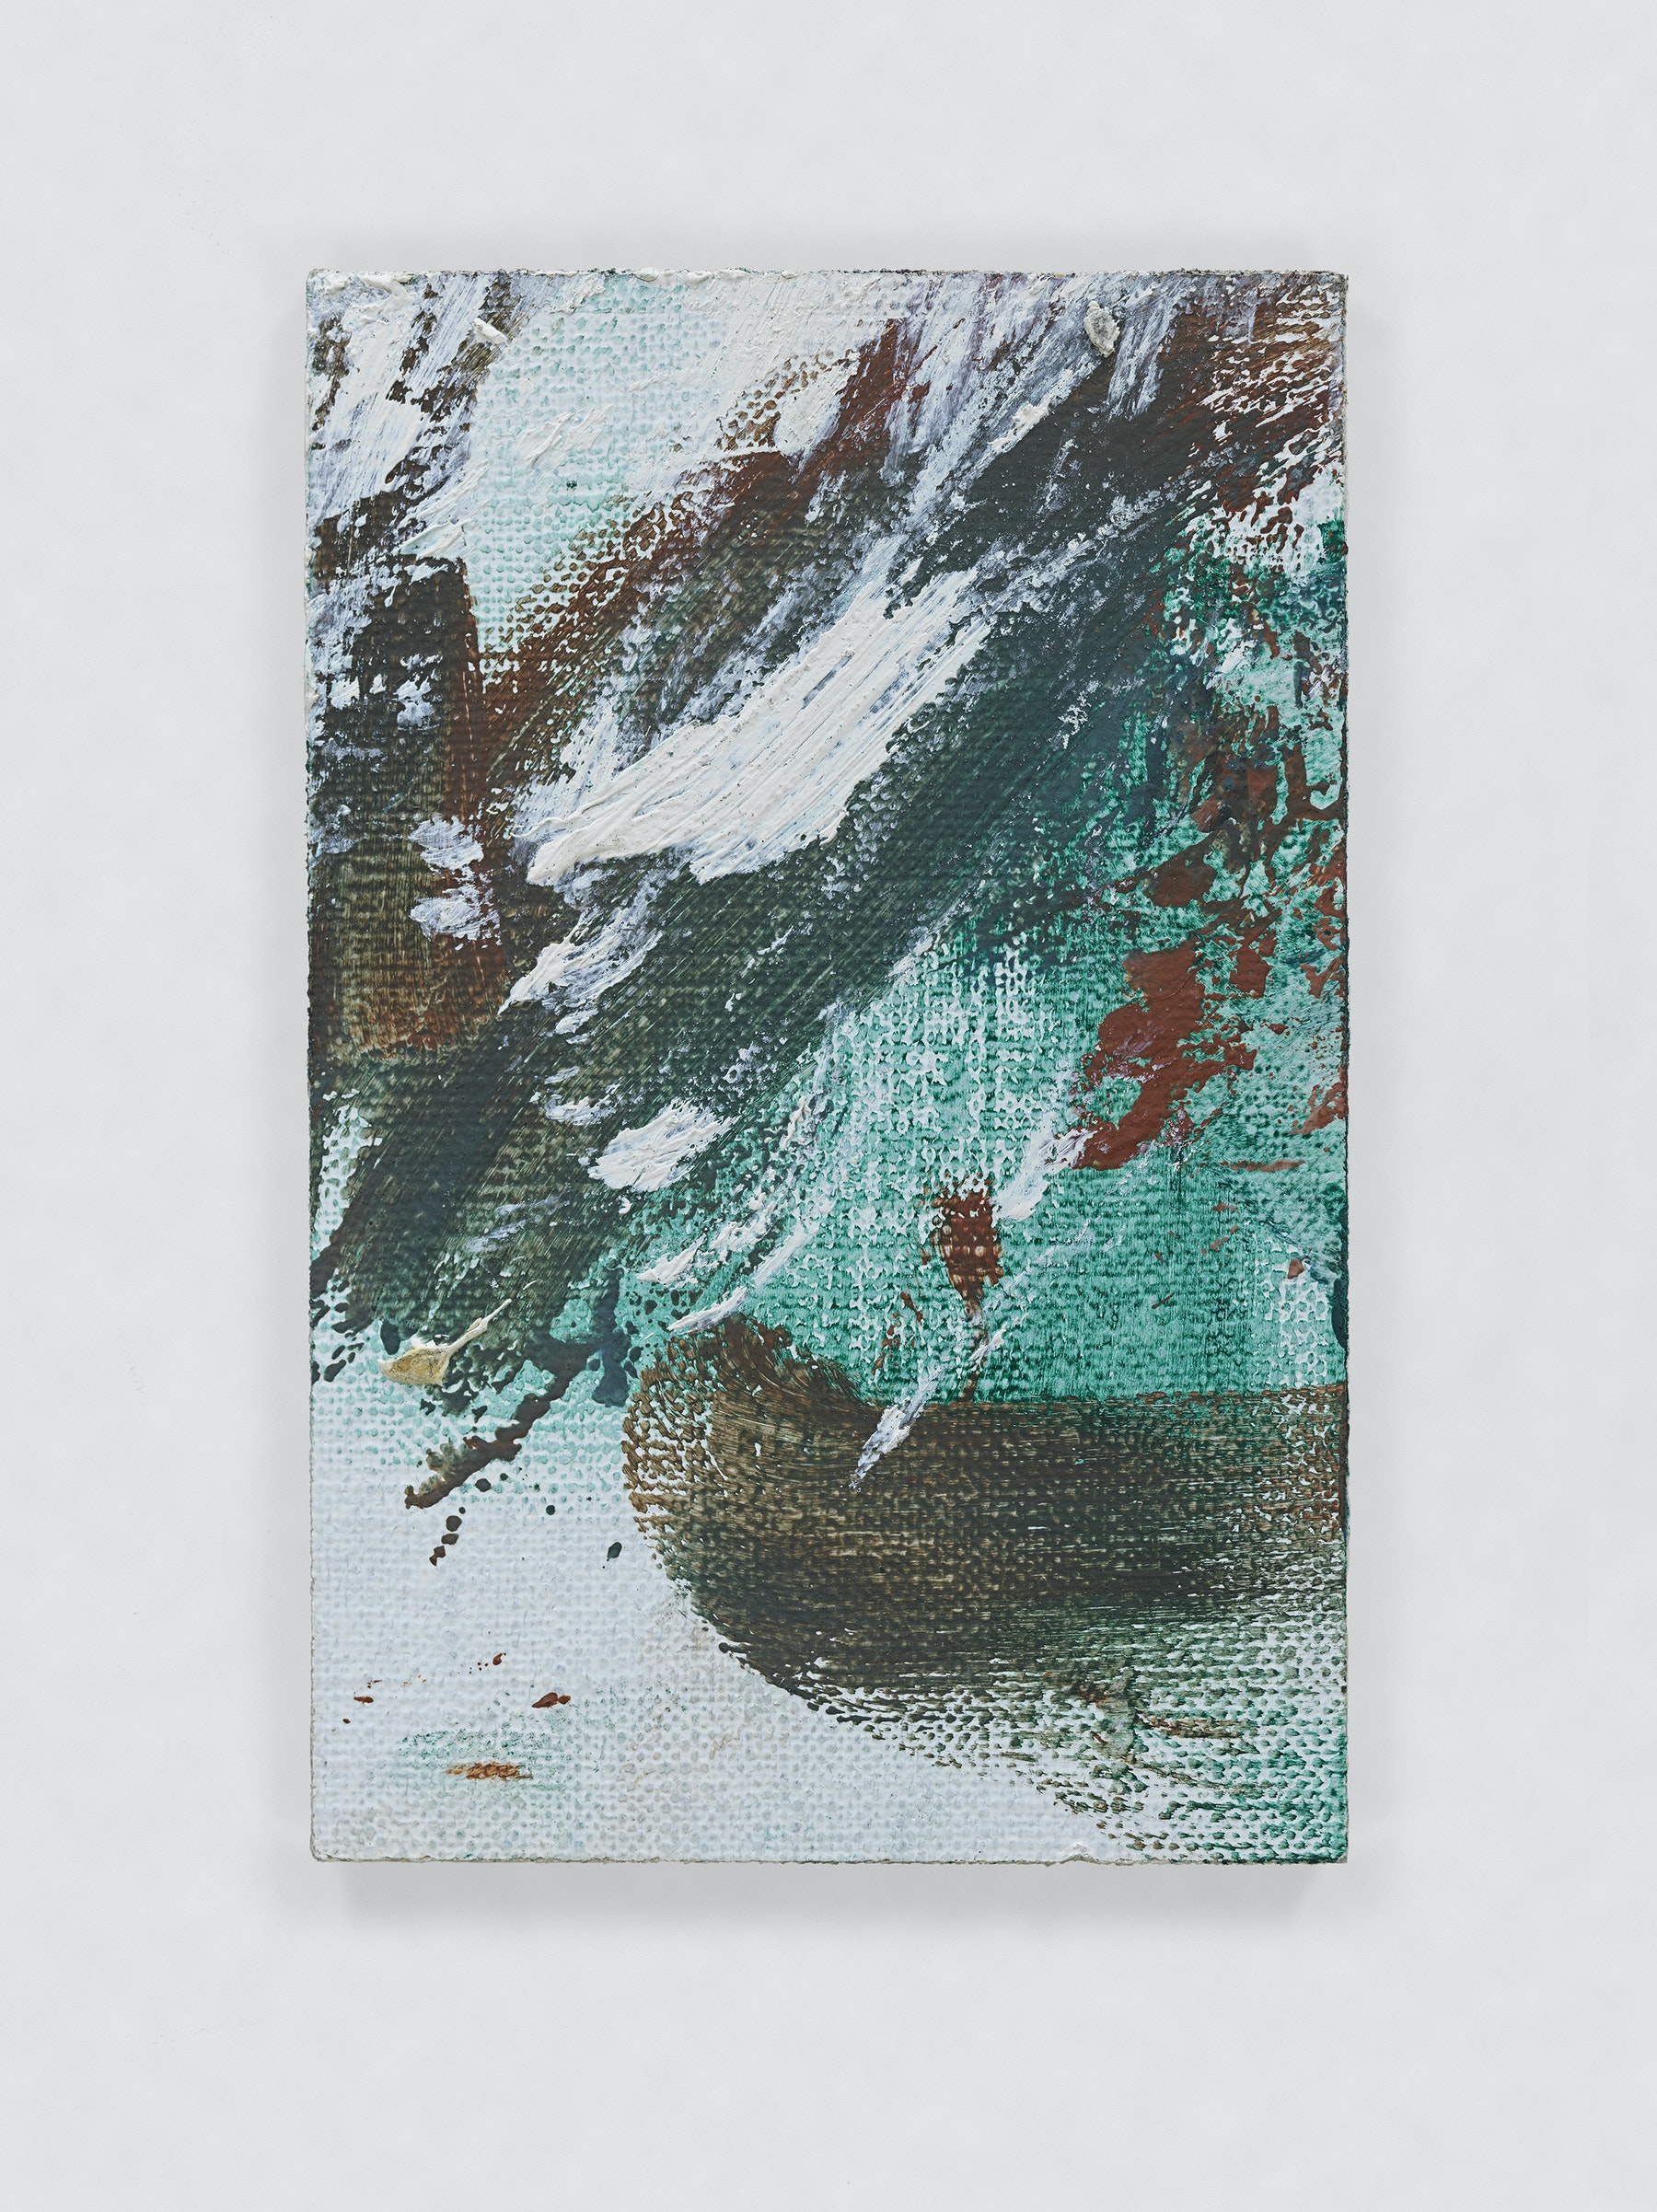 """Louise Fishman """"UNTITLED,"""" 2011 Oil on board 3 x 2"""" [HxW] (7.62 x 5.08 cm) Inventory #FIS133 Courtesy of the artist and Vielmetter Los Angeles Photo credit: Genevieve Hanson Signed and dated on verso"""